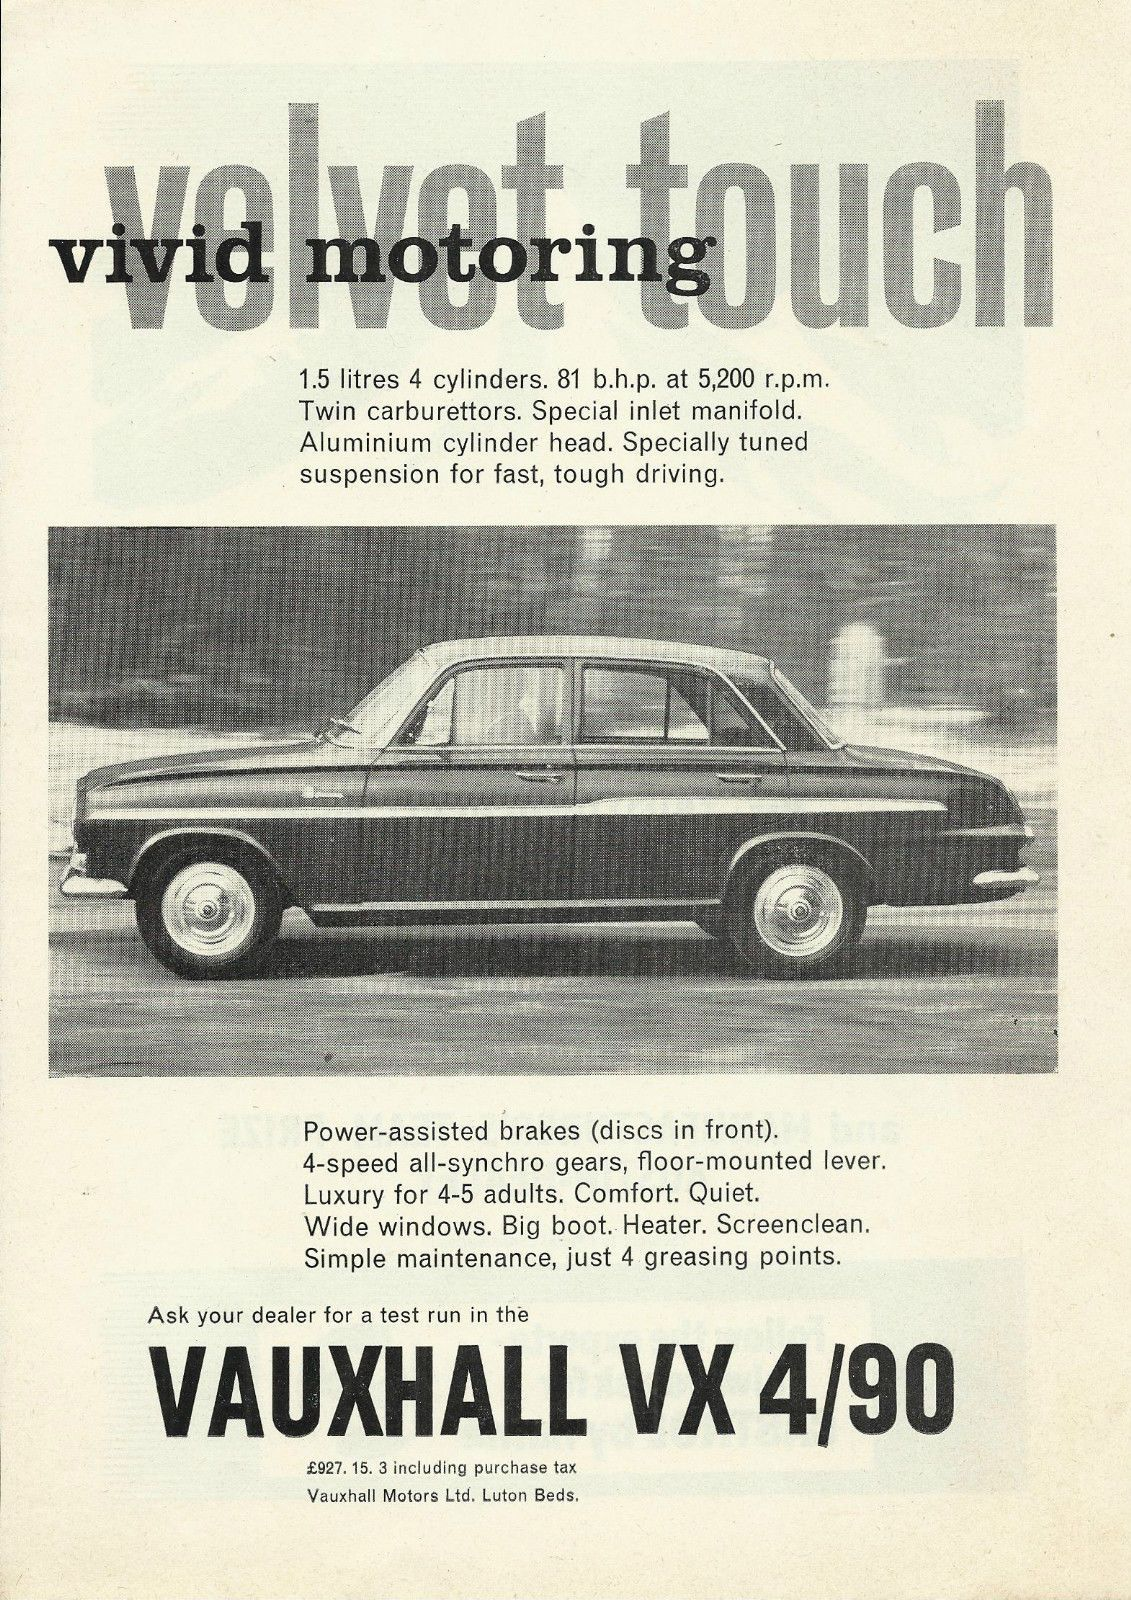 VAUXHALL VX 4/90 FB original 1962 UK magazine advert cutting \'vivid ...